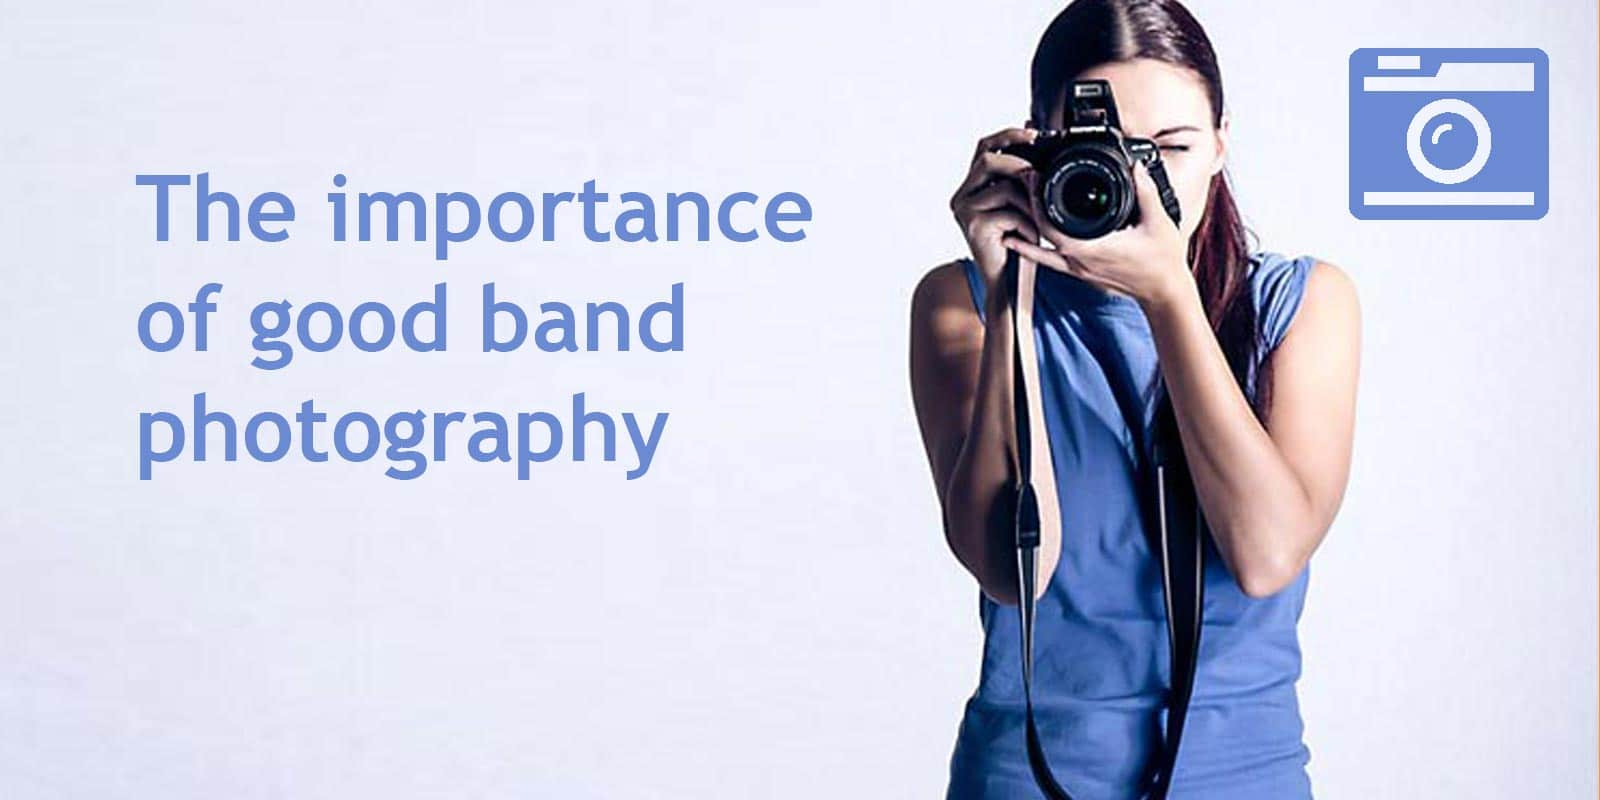 The importance of good band photography